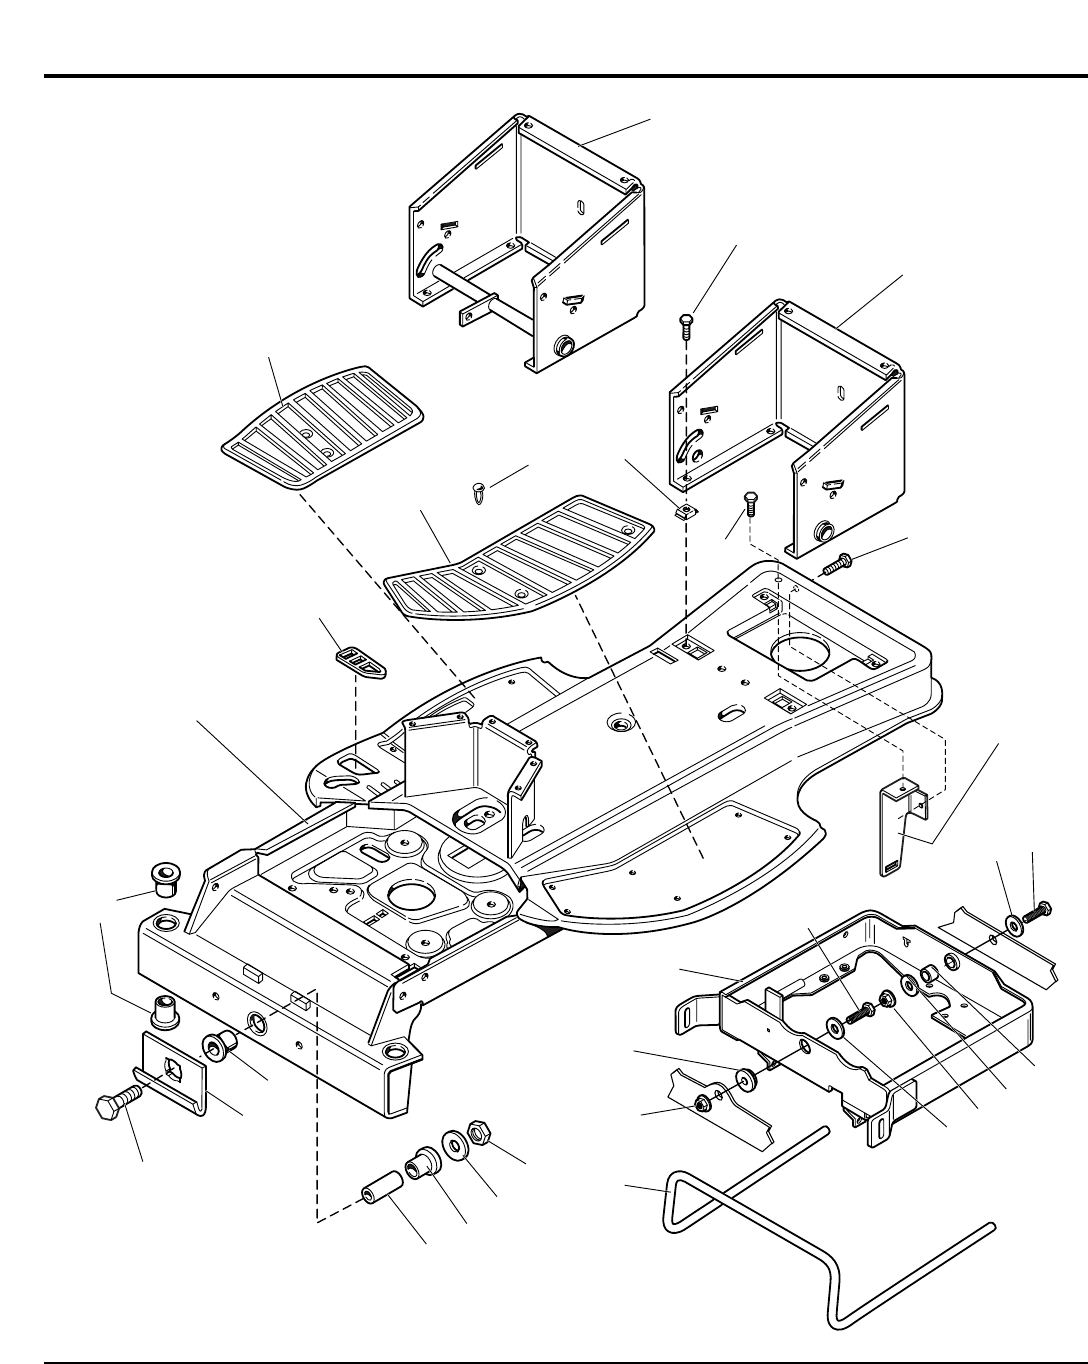 Page 4 of Simplicity Lawn Mower Express Series User Guide